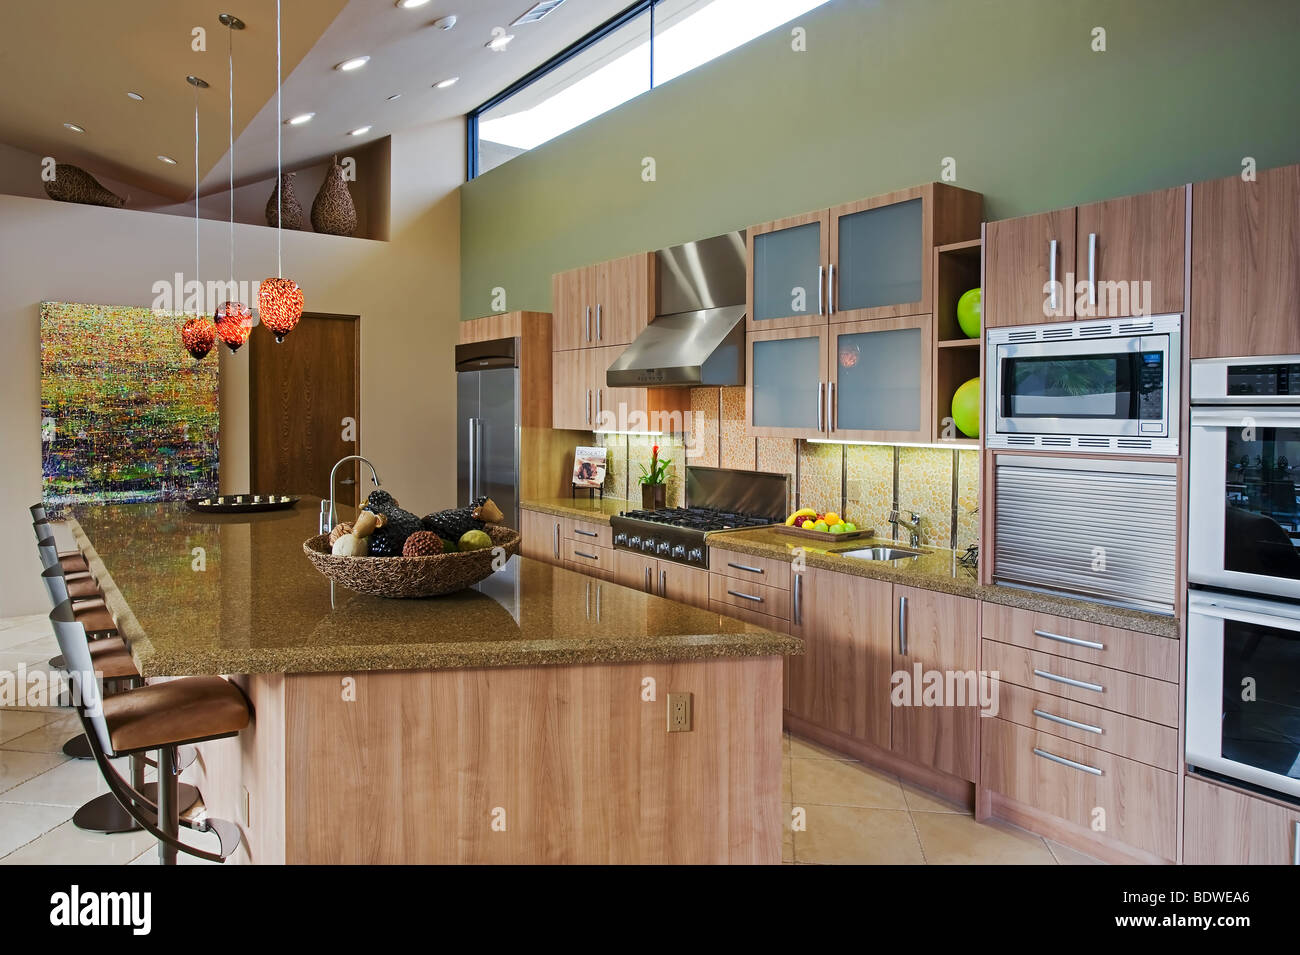 sideview of ultra modern high ceiling kitchen with granite center